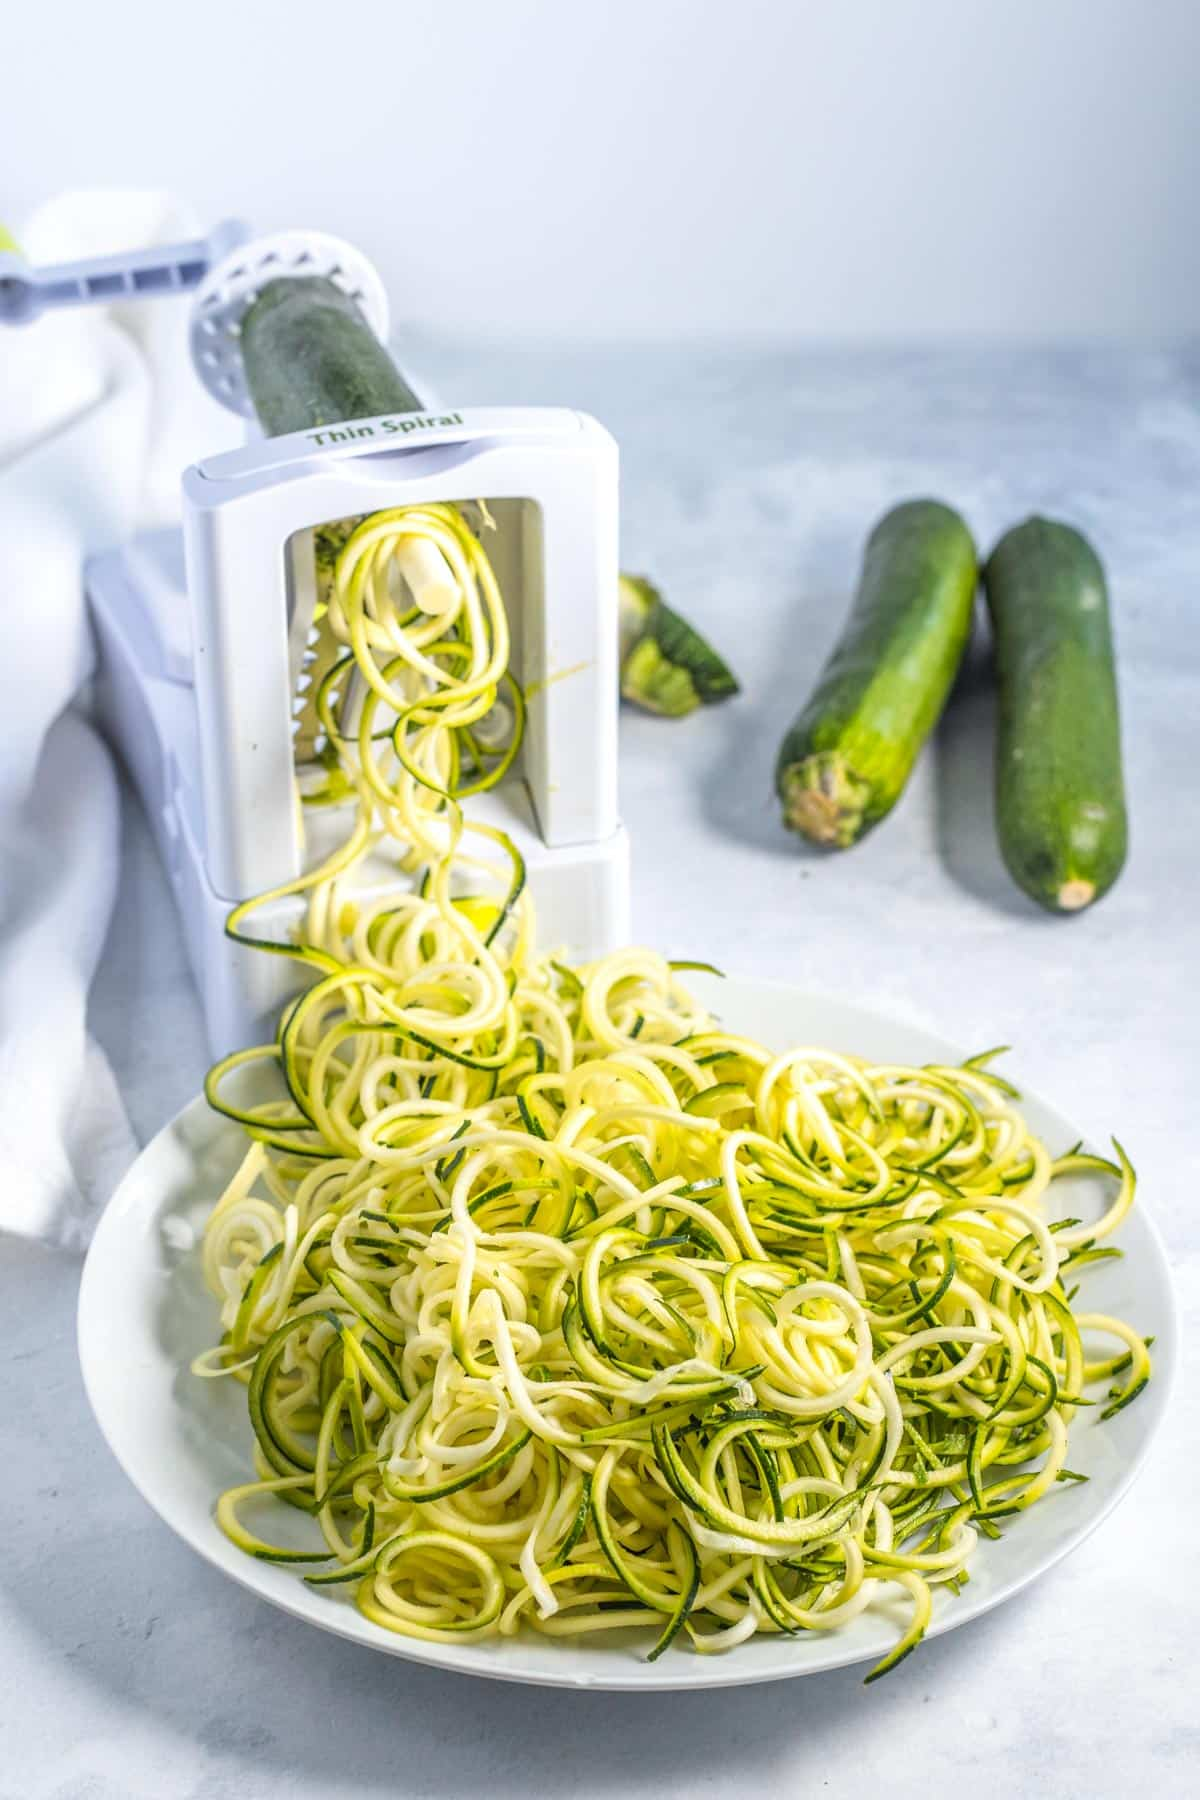 spiralizer with zucchinis making zoodles, zucchini noodle pasta